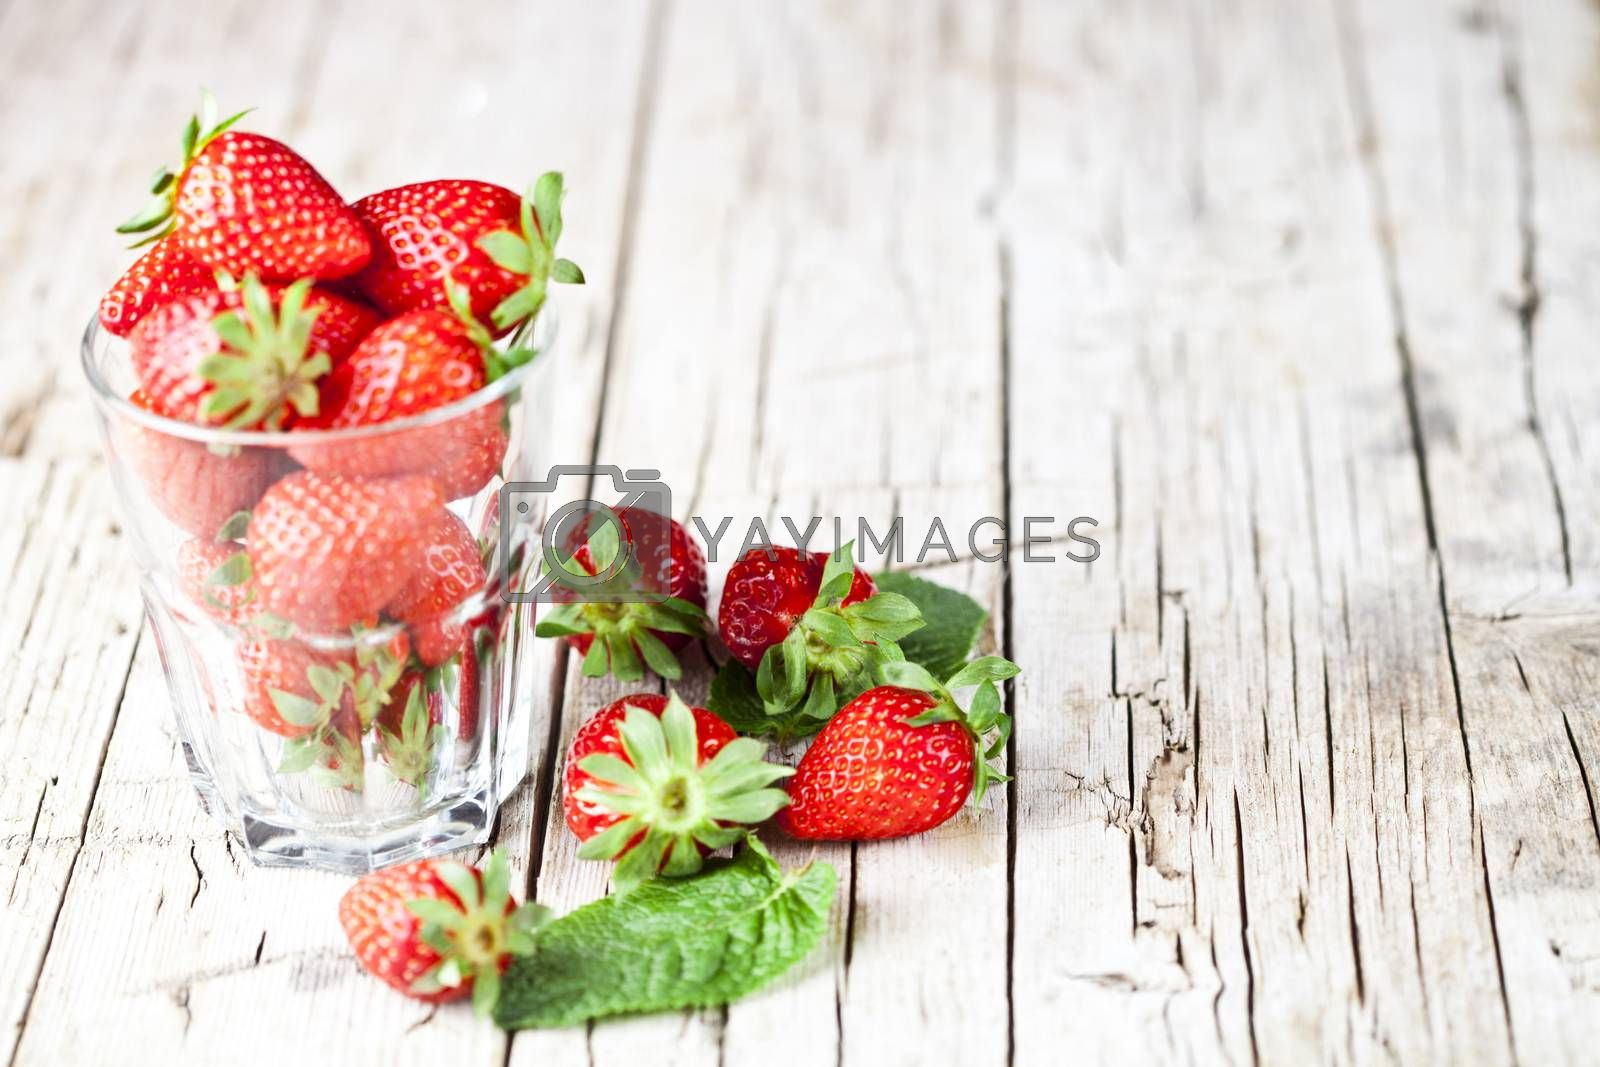 Organic red strawberries in glass and mint leaves on rustic wooden background. Healthy sweet food, vitamins and fruity concept. With copy space.